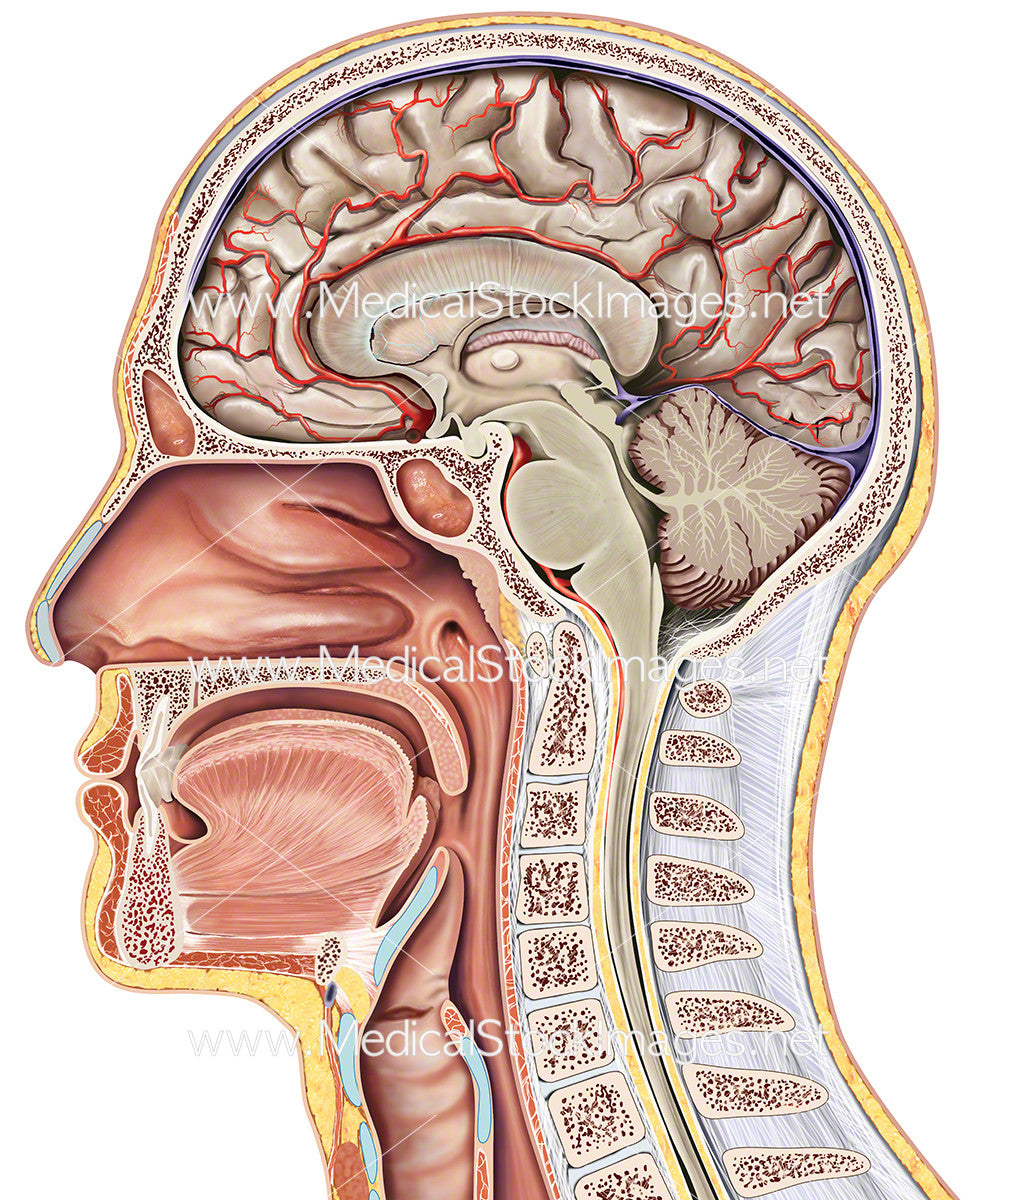 Midsagittal Section of the Head – Medical Stock Images Company